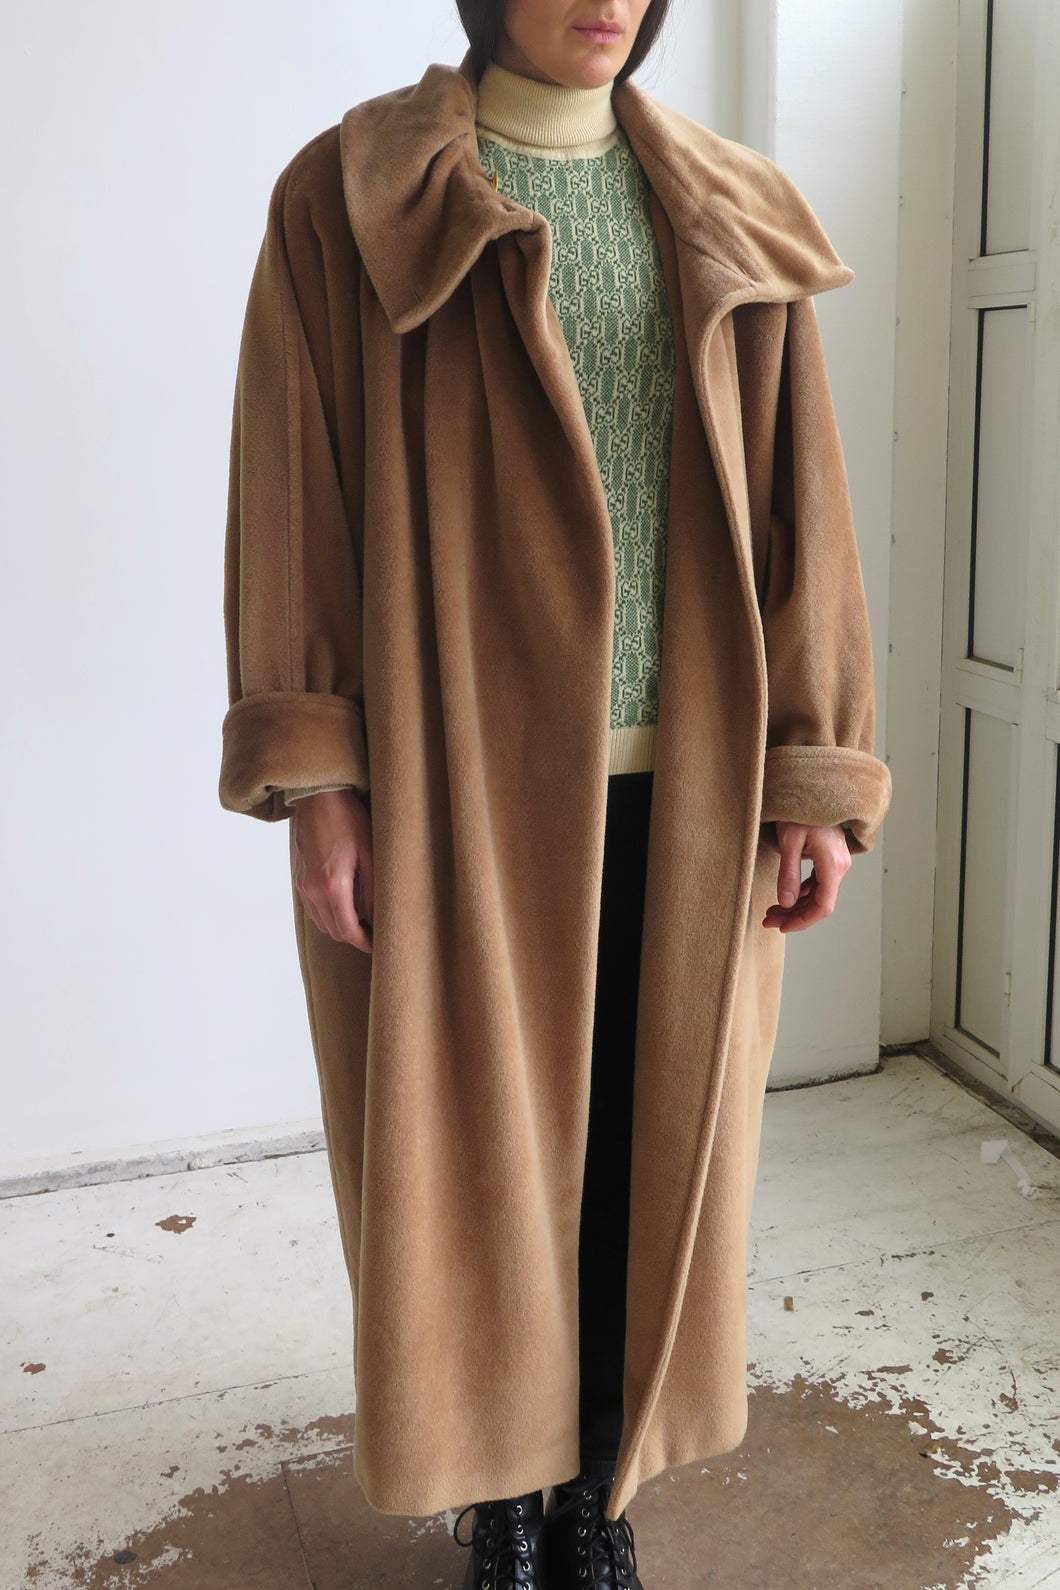 Max Mara Camel Coat - Studio Travel